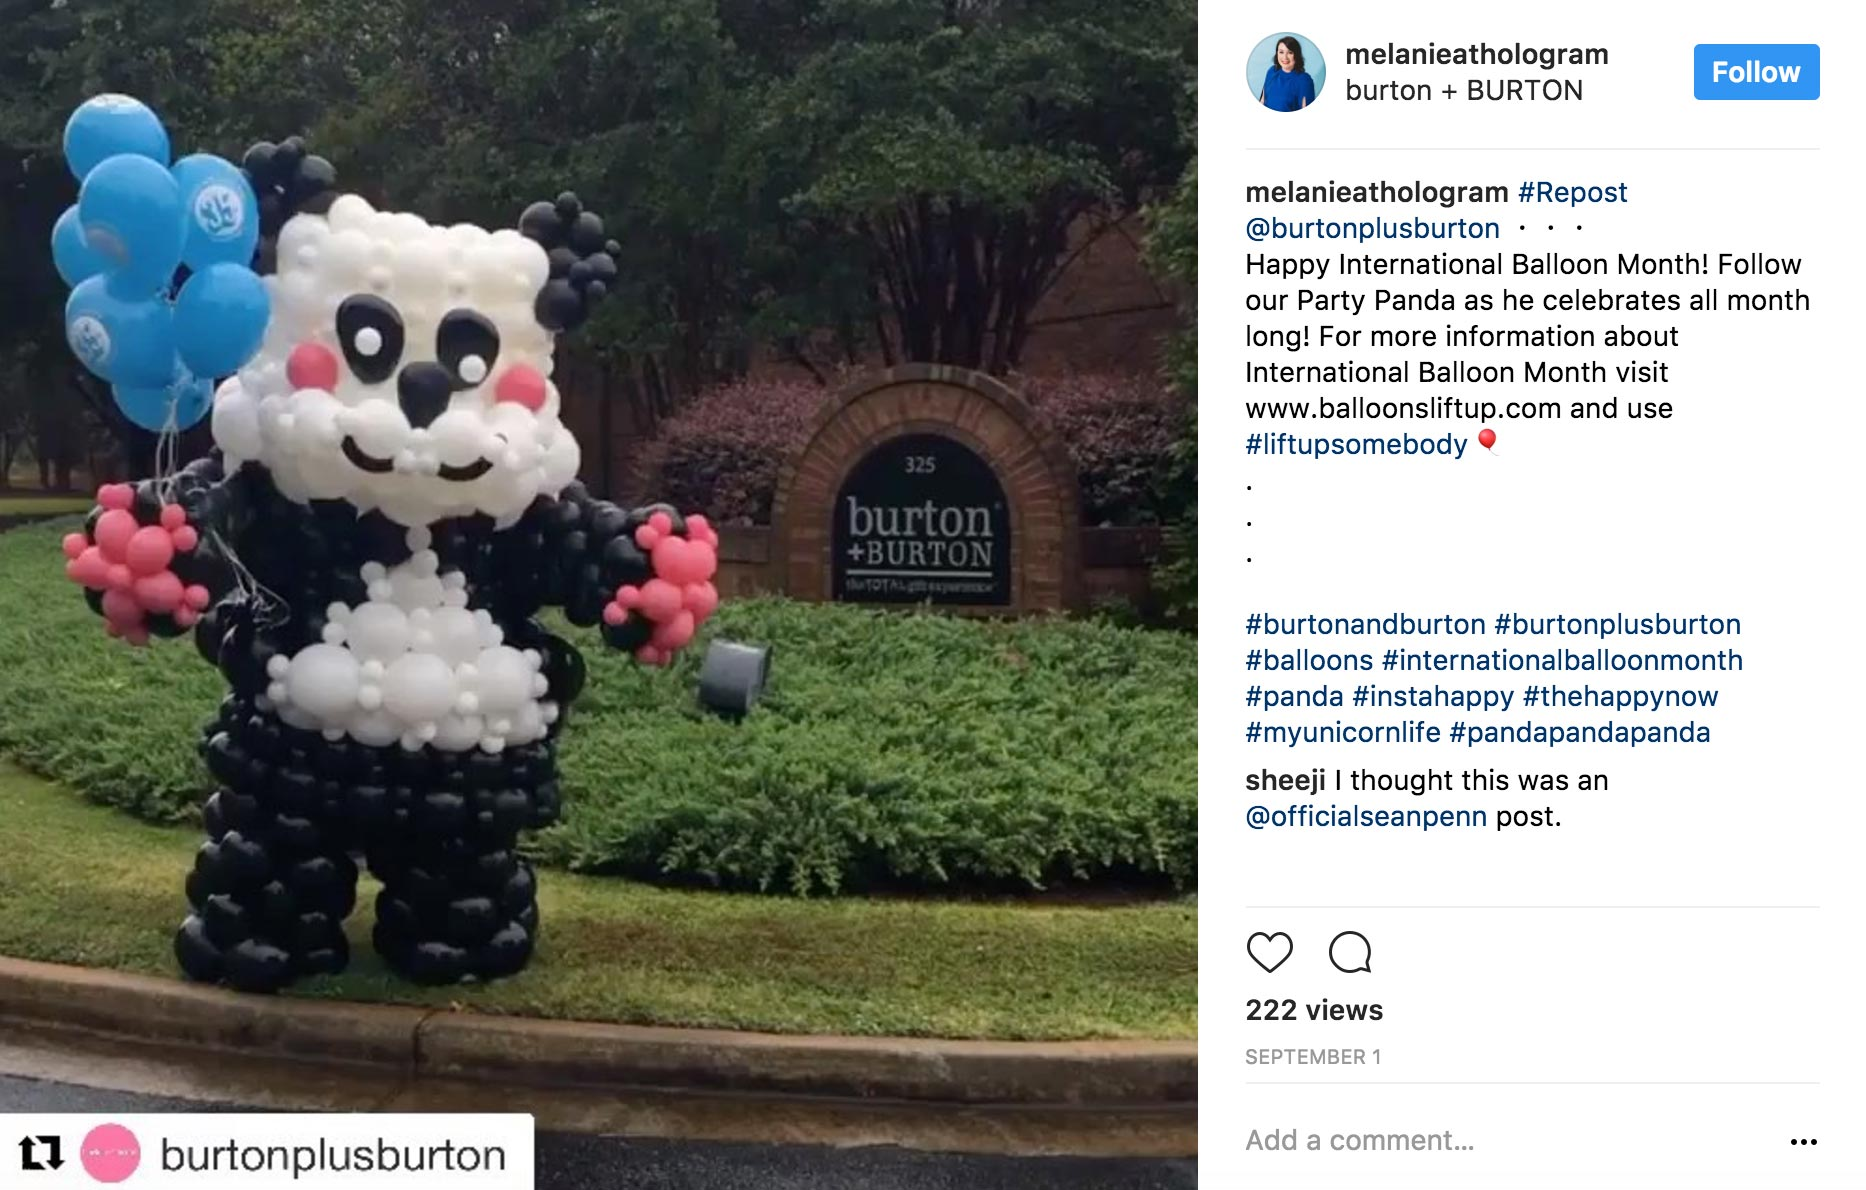 For their Giant Panda Balloon Character that was seen holding signs to promote International Balloon Month all over town.